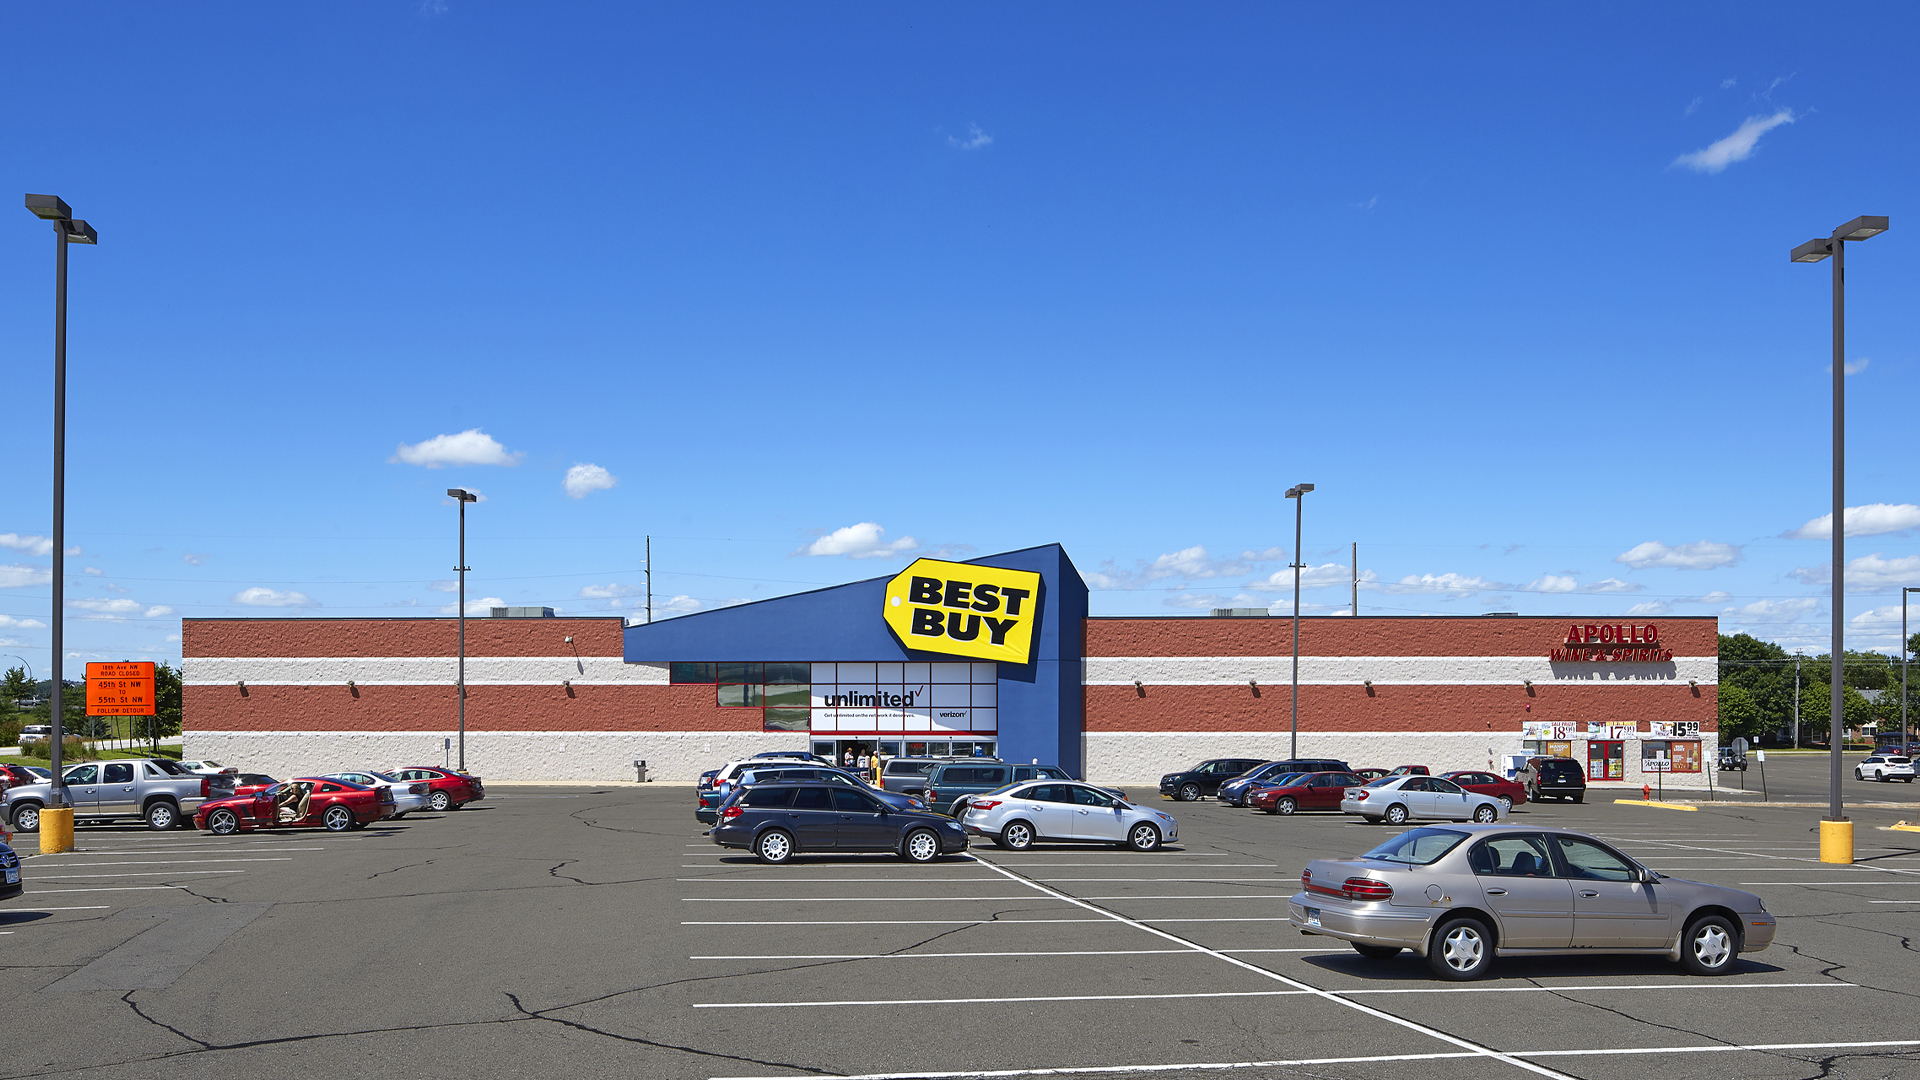 Maplewood Square Retail Shopping Center Rochester MN exterior elevation view of Best Buy